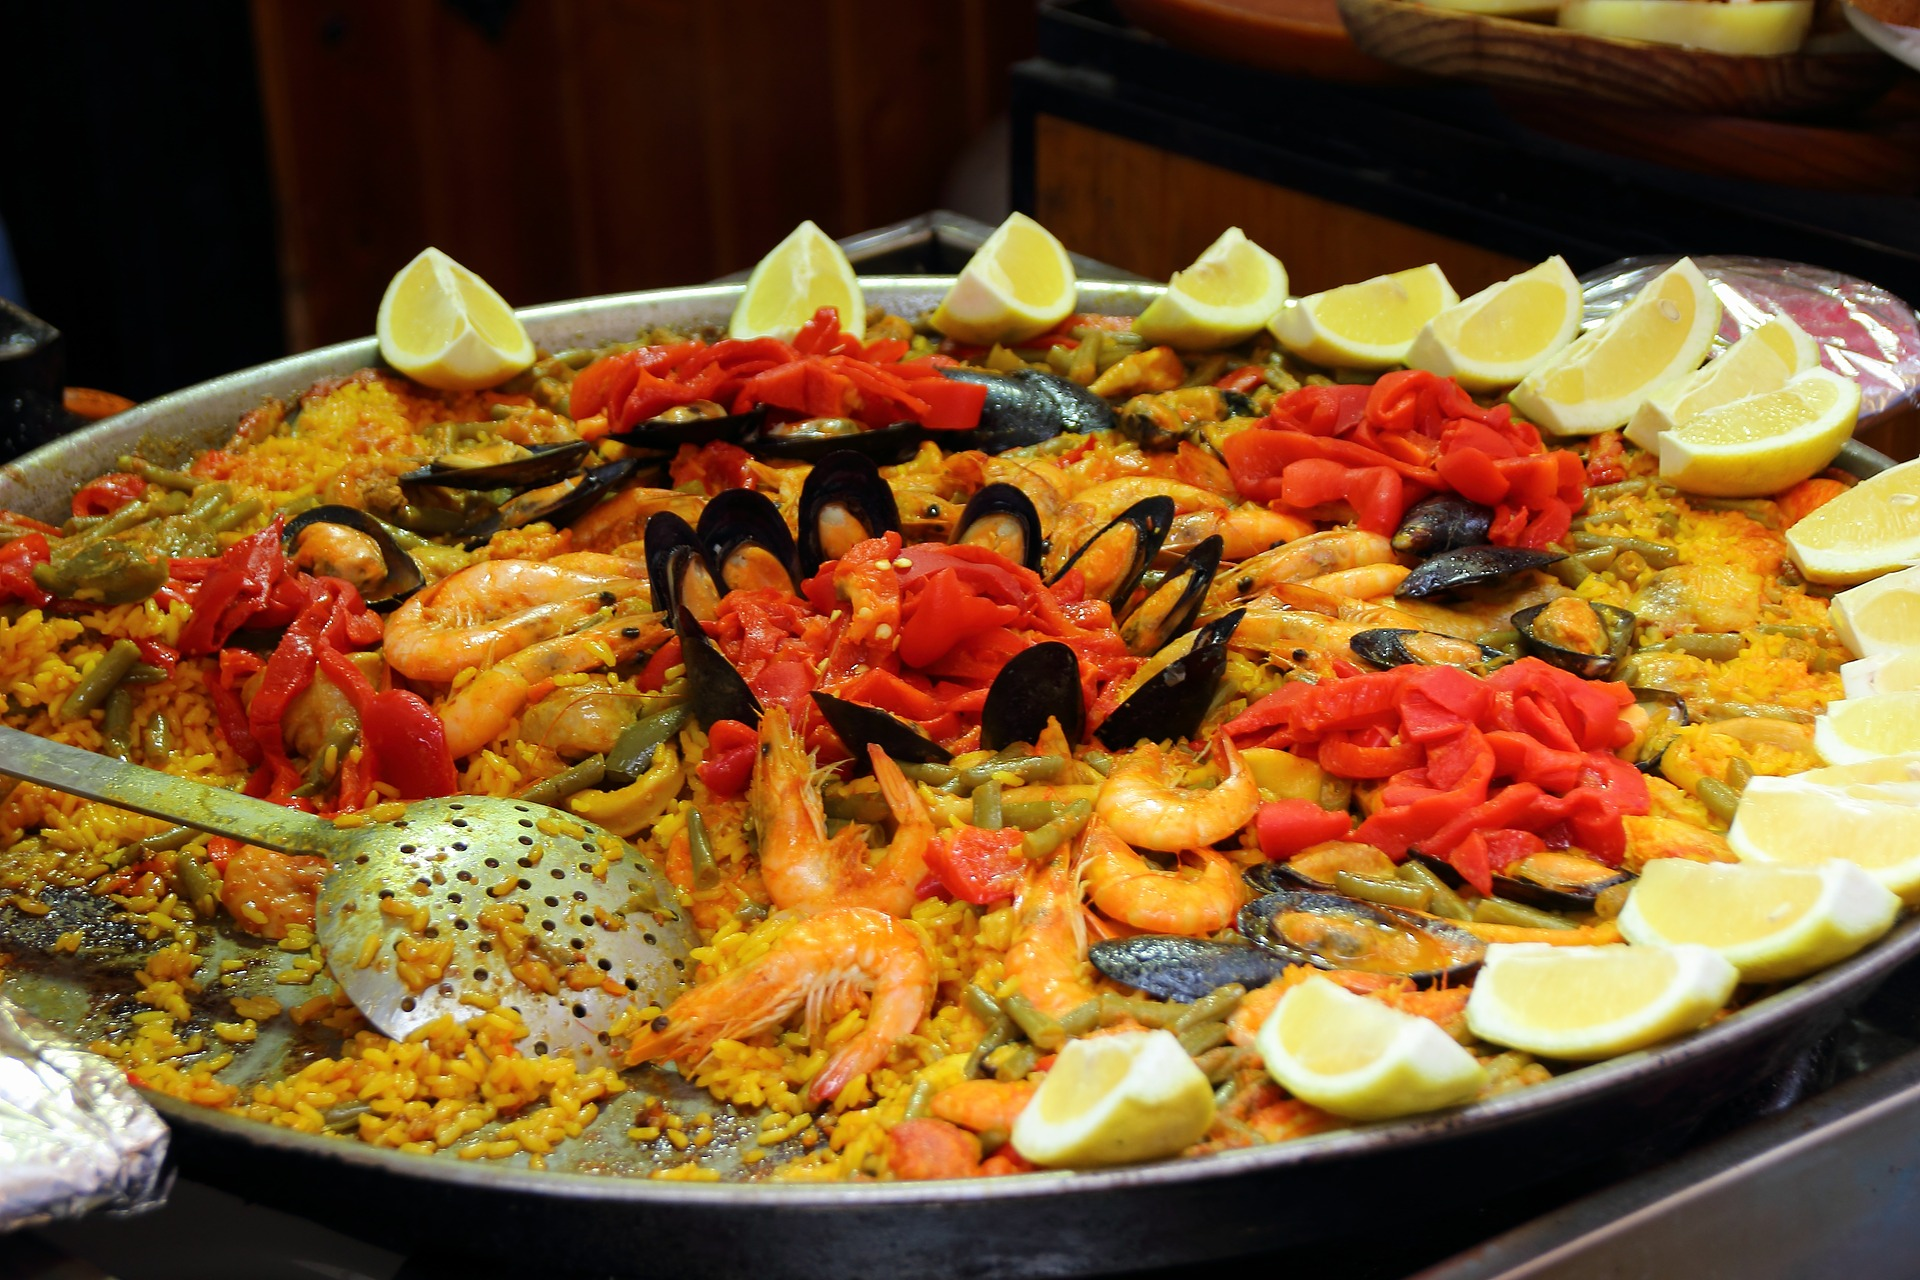 Paella is a traditional Spanish dish